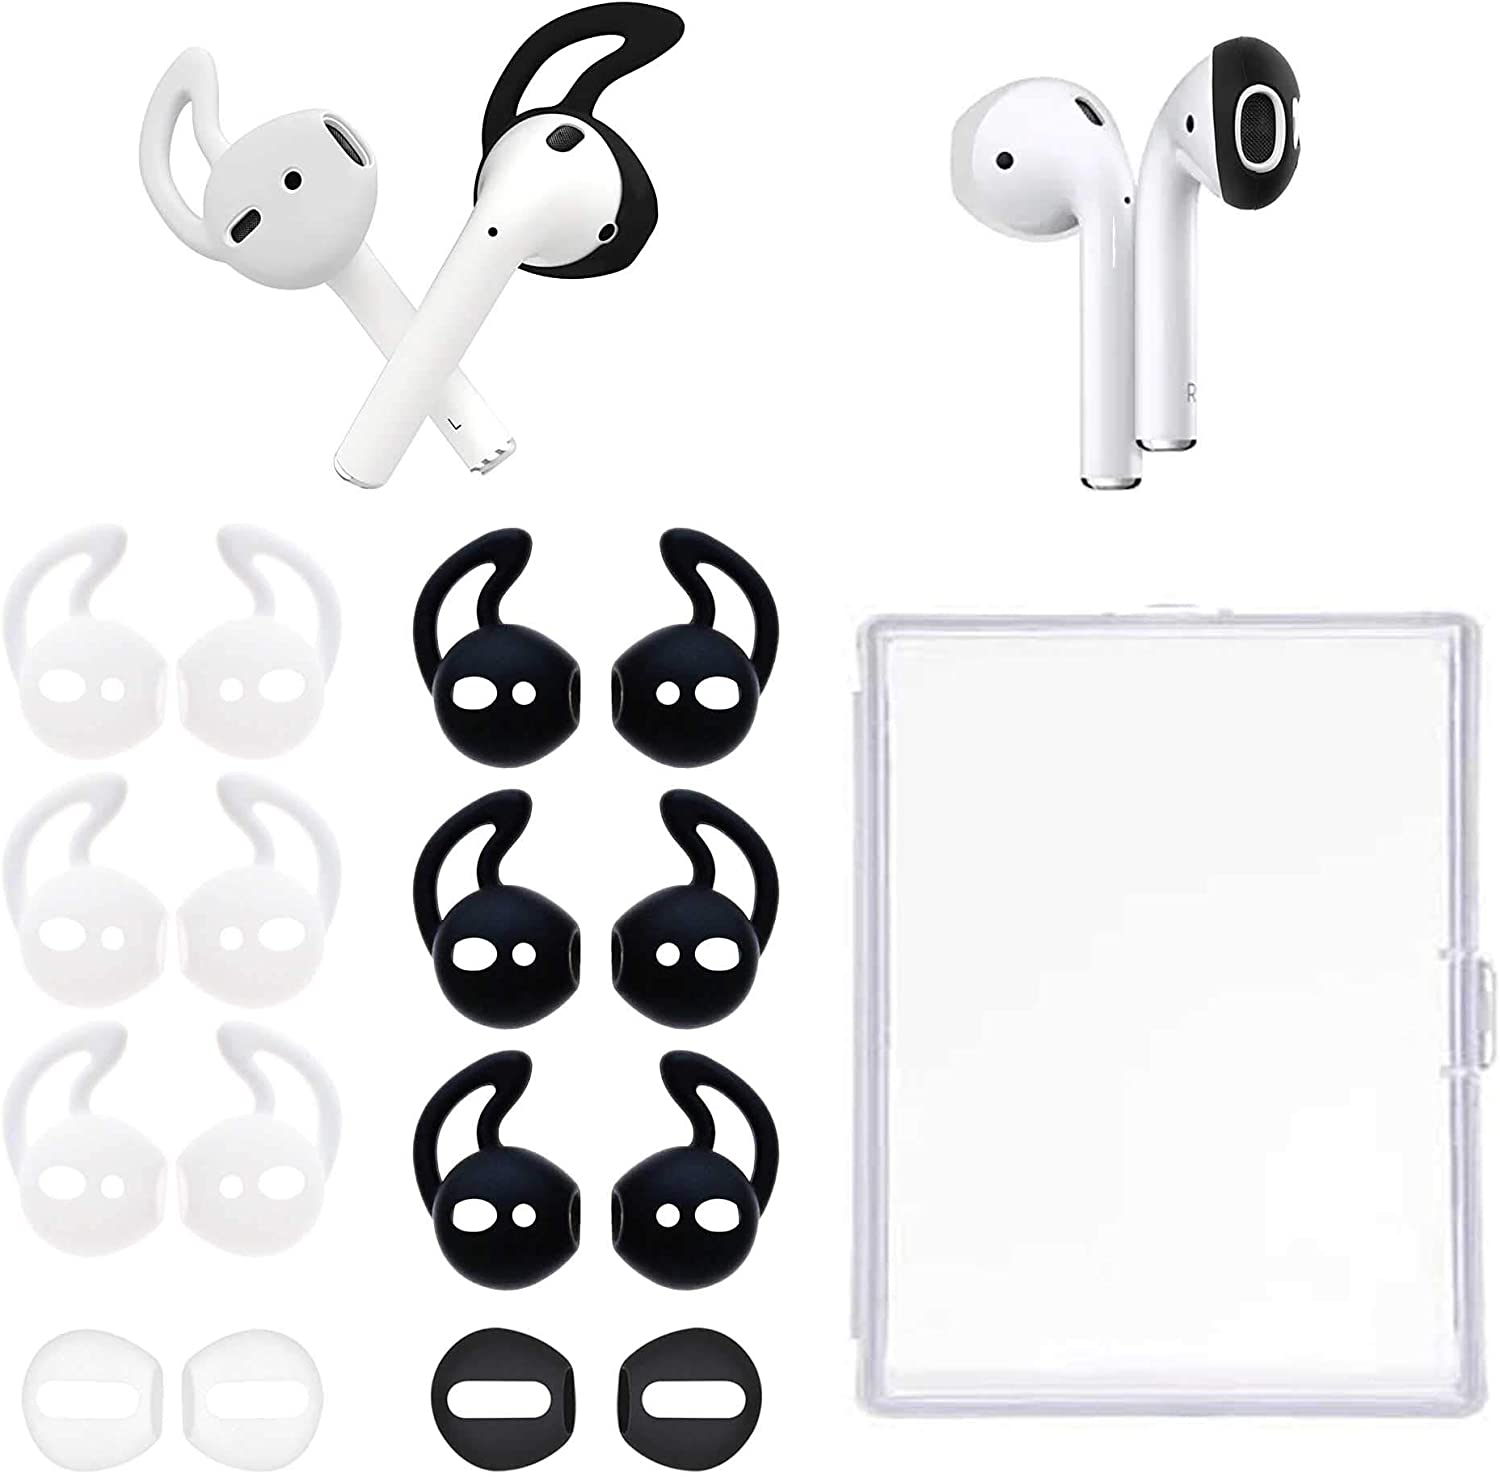 8 Pairs Ear Covers Ear Hooks Professional Anti-Slip Silicone Earbuds Tips Compatible with Apple Airpods 1&2 (White + Black)